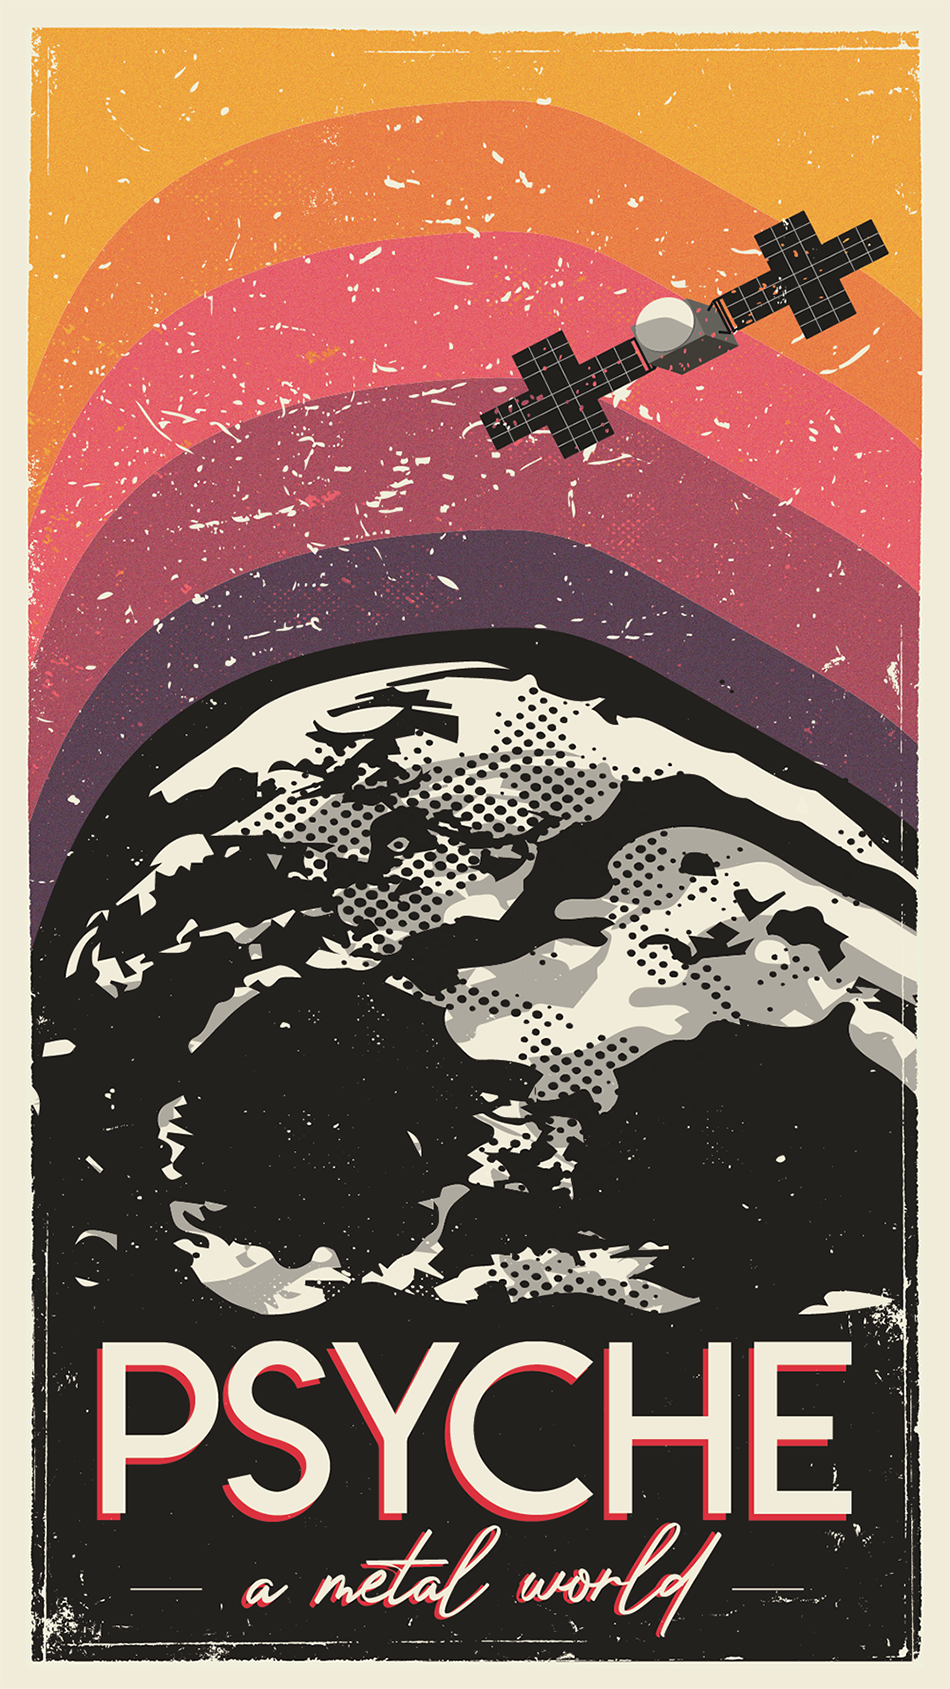 A vintage travel poster with an illustration of the Psyche asteroid.